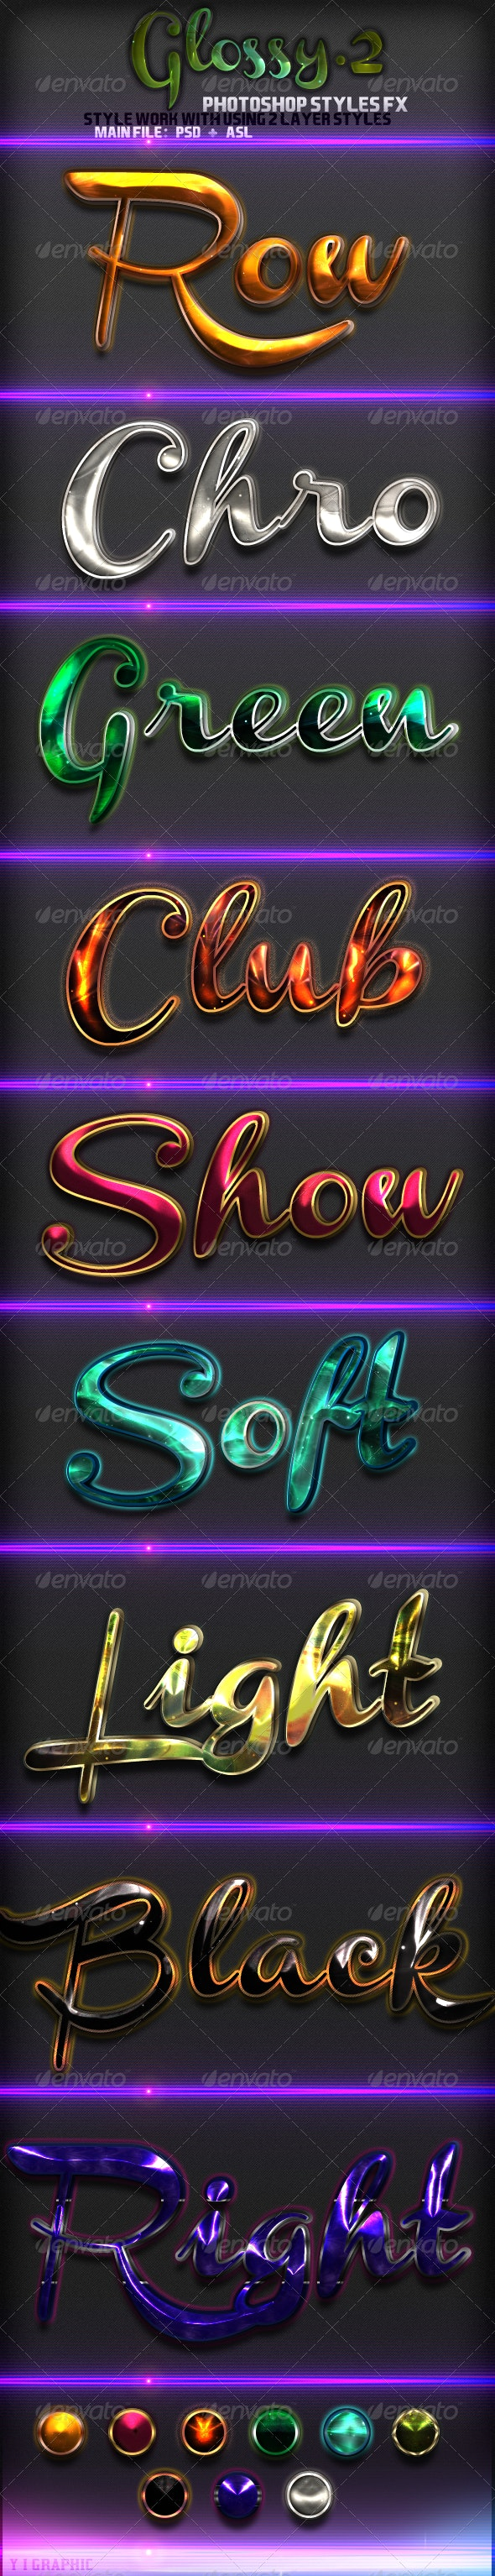 9 Glossy Text Styles - Text Effects Styles